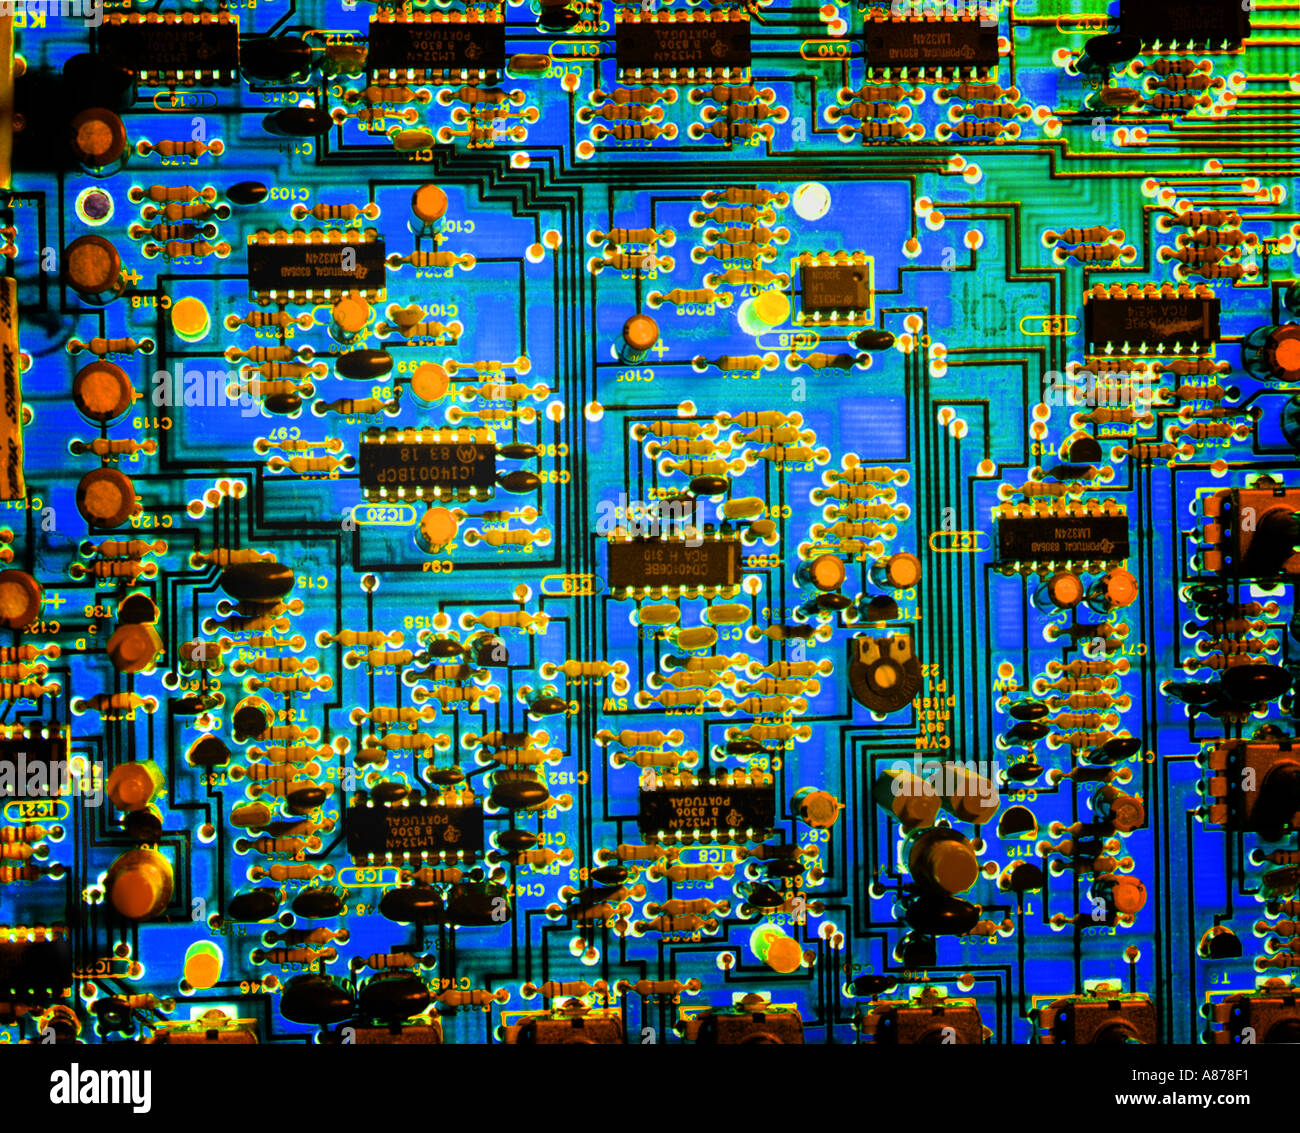 Integrated Circuit Board - Stock Image